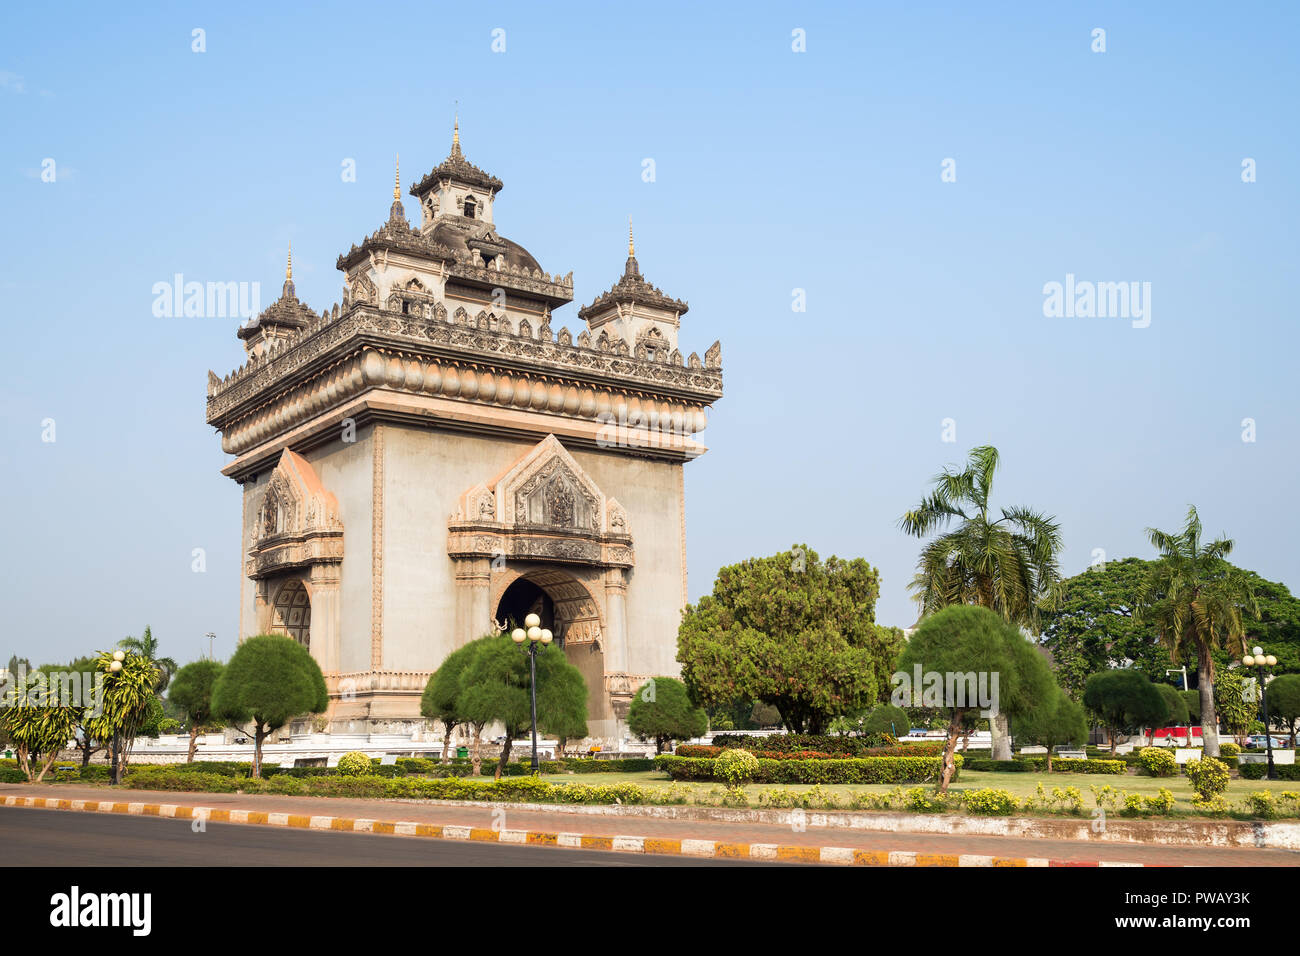 Patuxai (Patuxay), Victory Gate or Gate of Triumph, war monument and park in Vientiane, Laos, on a sunny day. - Stock Image